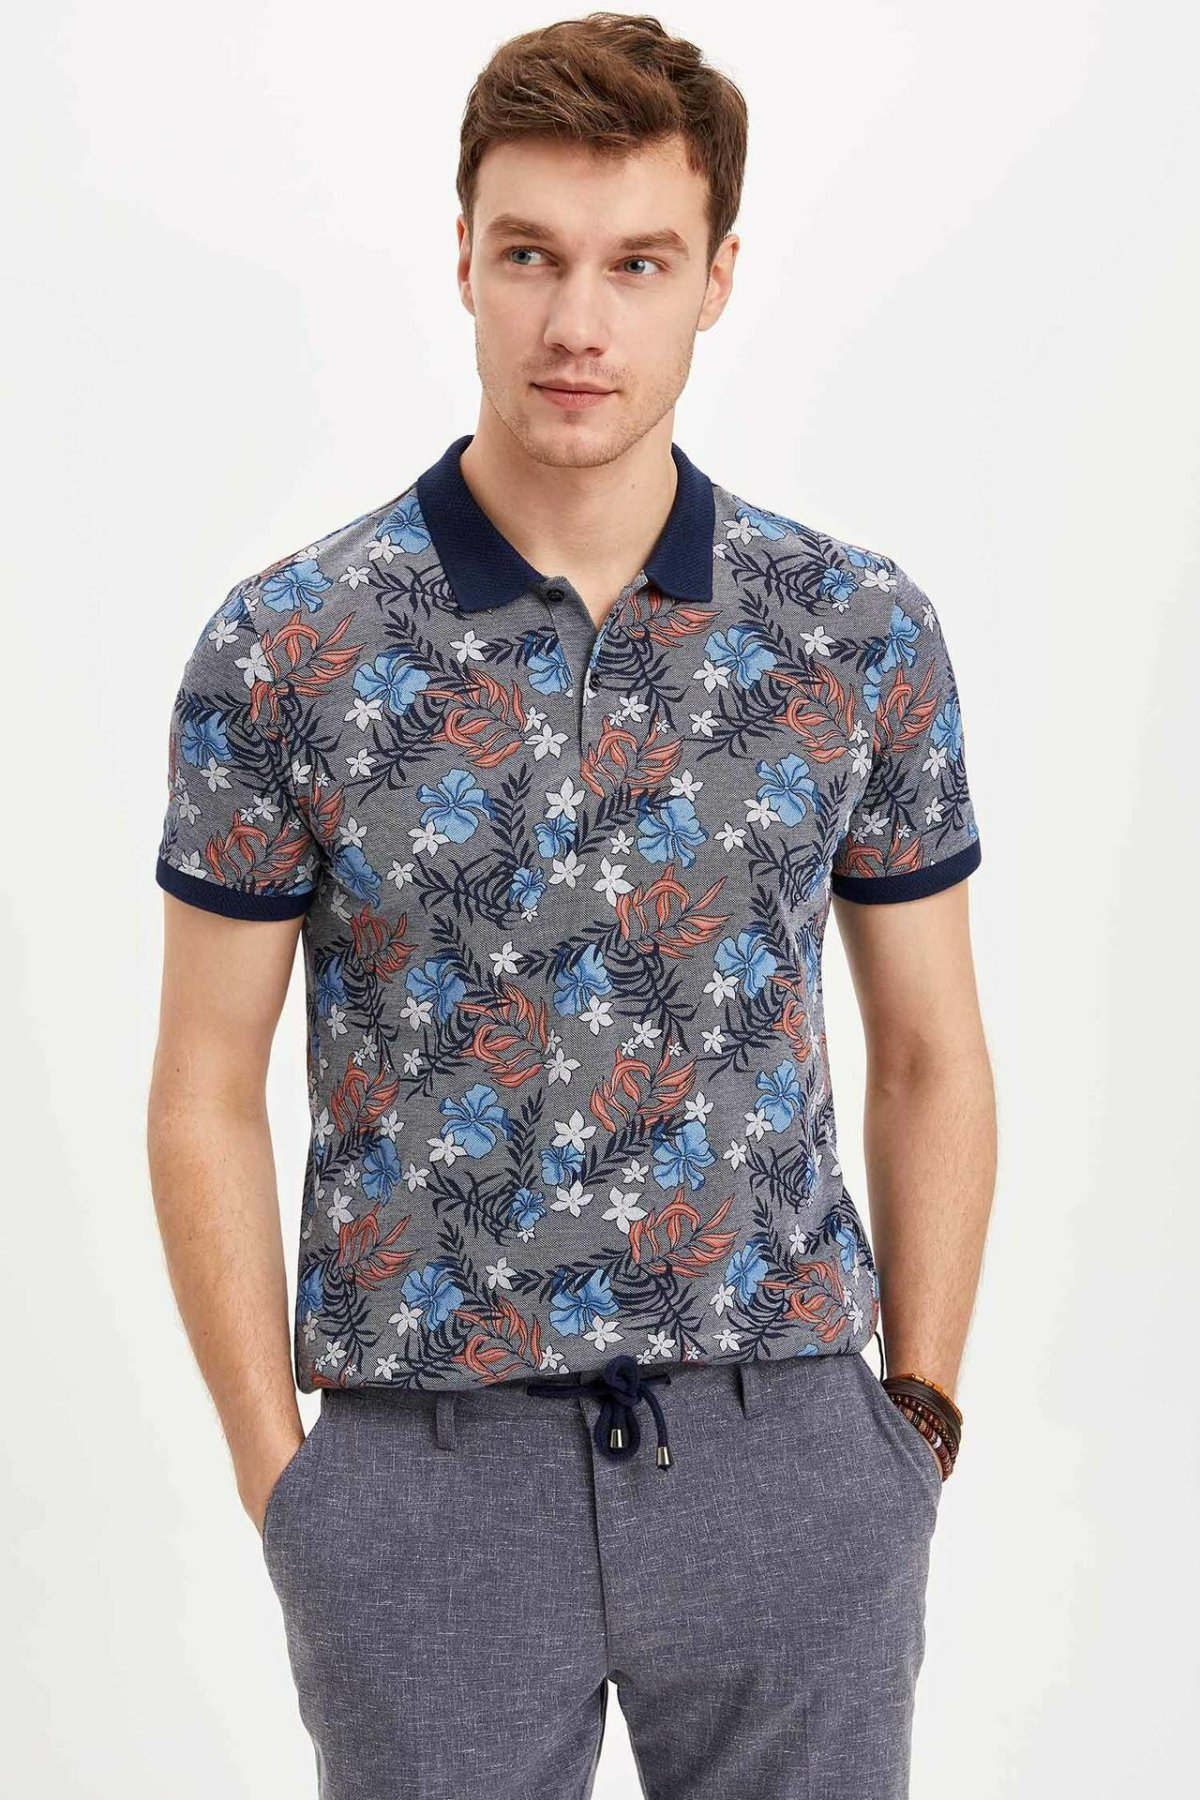 DeFacto New Summer Man Fashion Polo Shirt Men's Casual Print Pattern Tops Male Cotton Comfort Short Sleeves - K3969AZ19SM